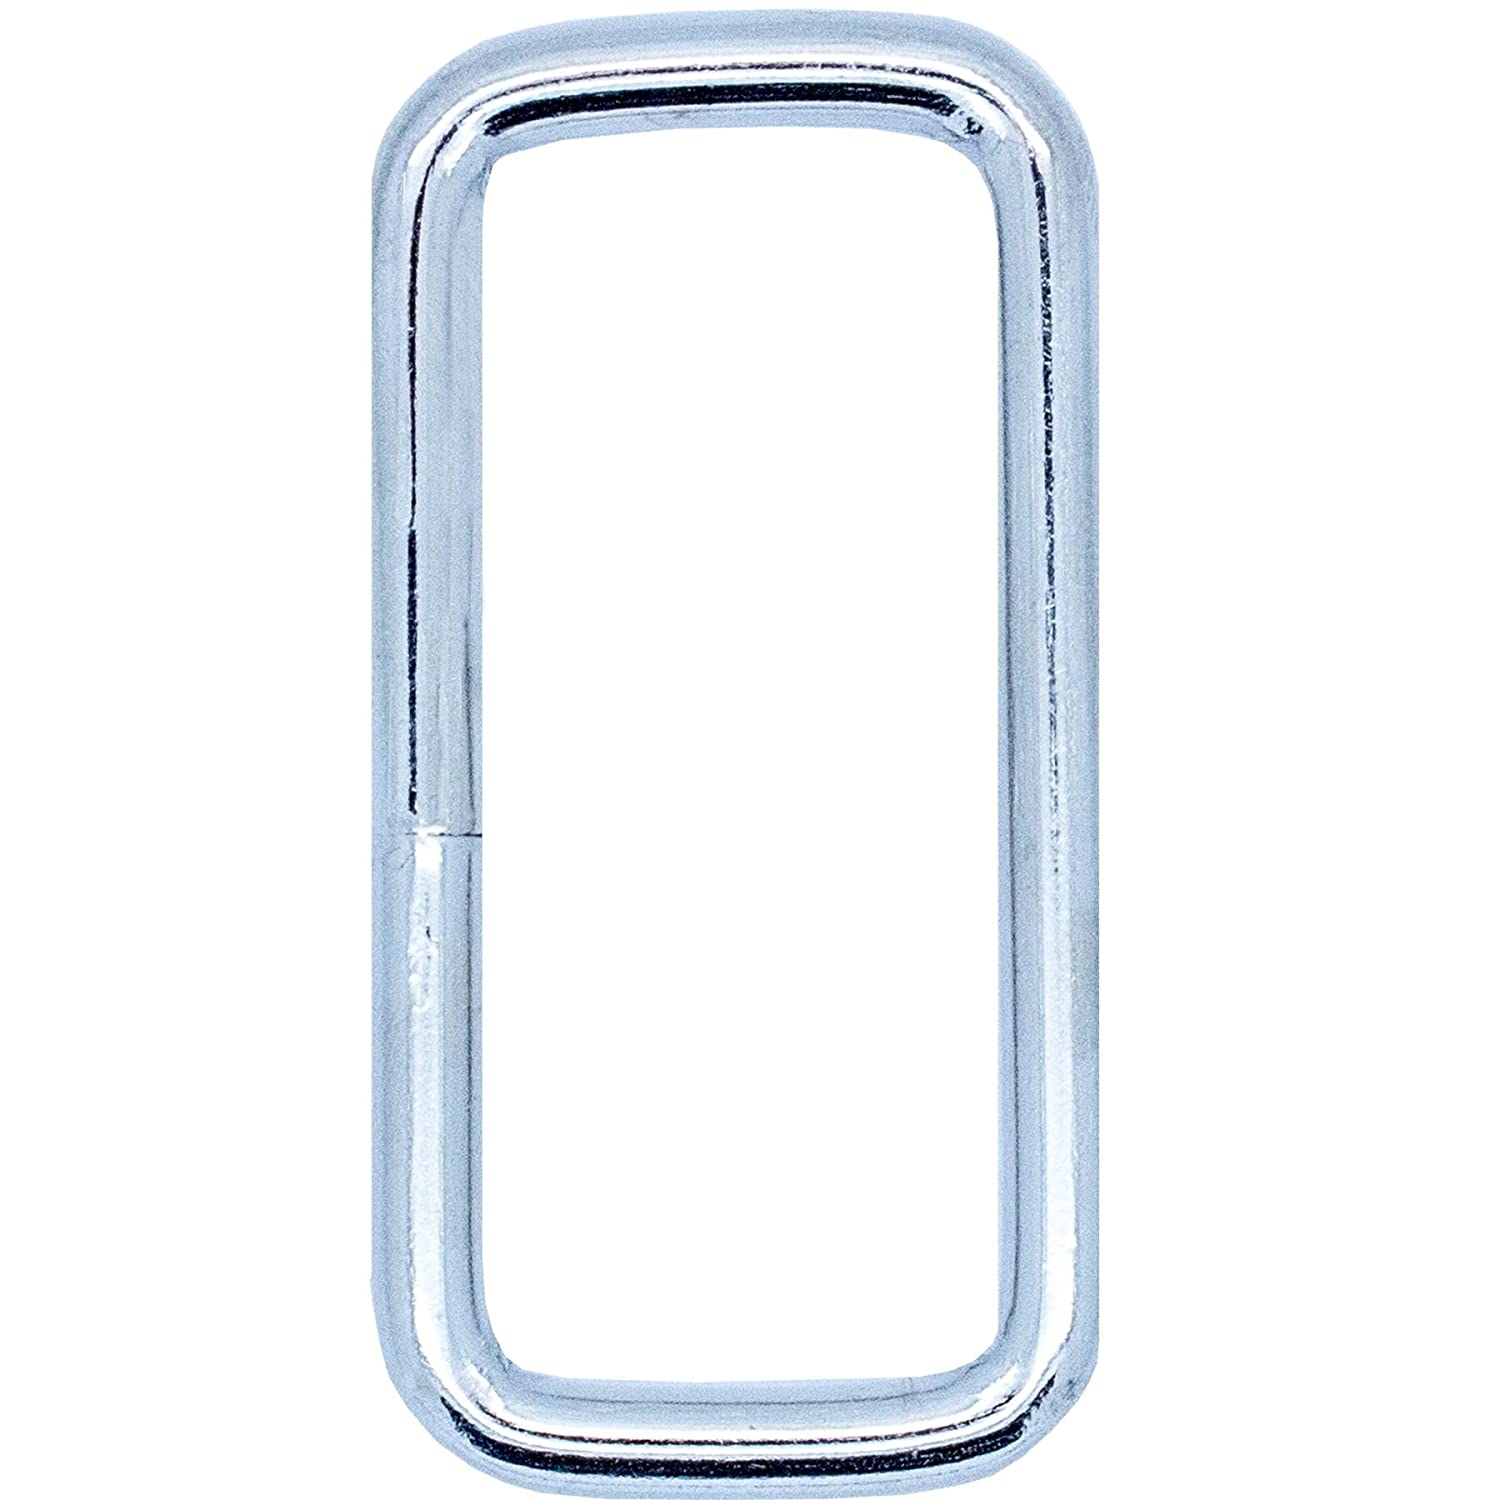 10x Large Quality Rectangle Metal D Rings - Links Buckles Leather Hand Bag Craft White Hinge